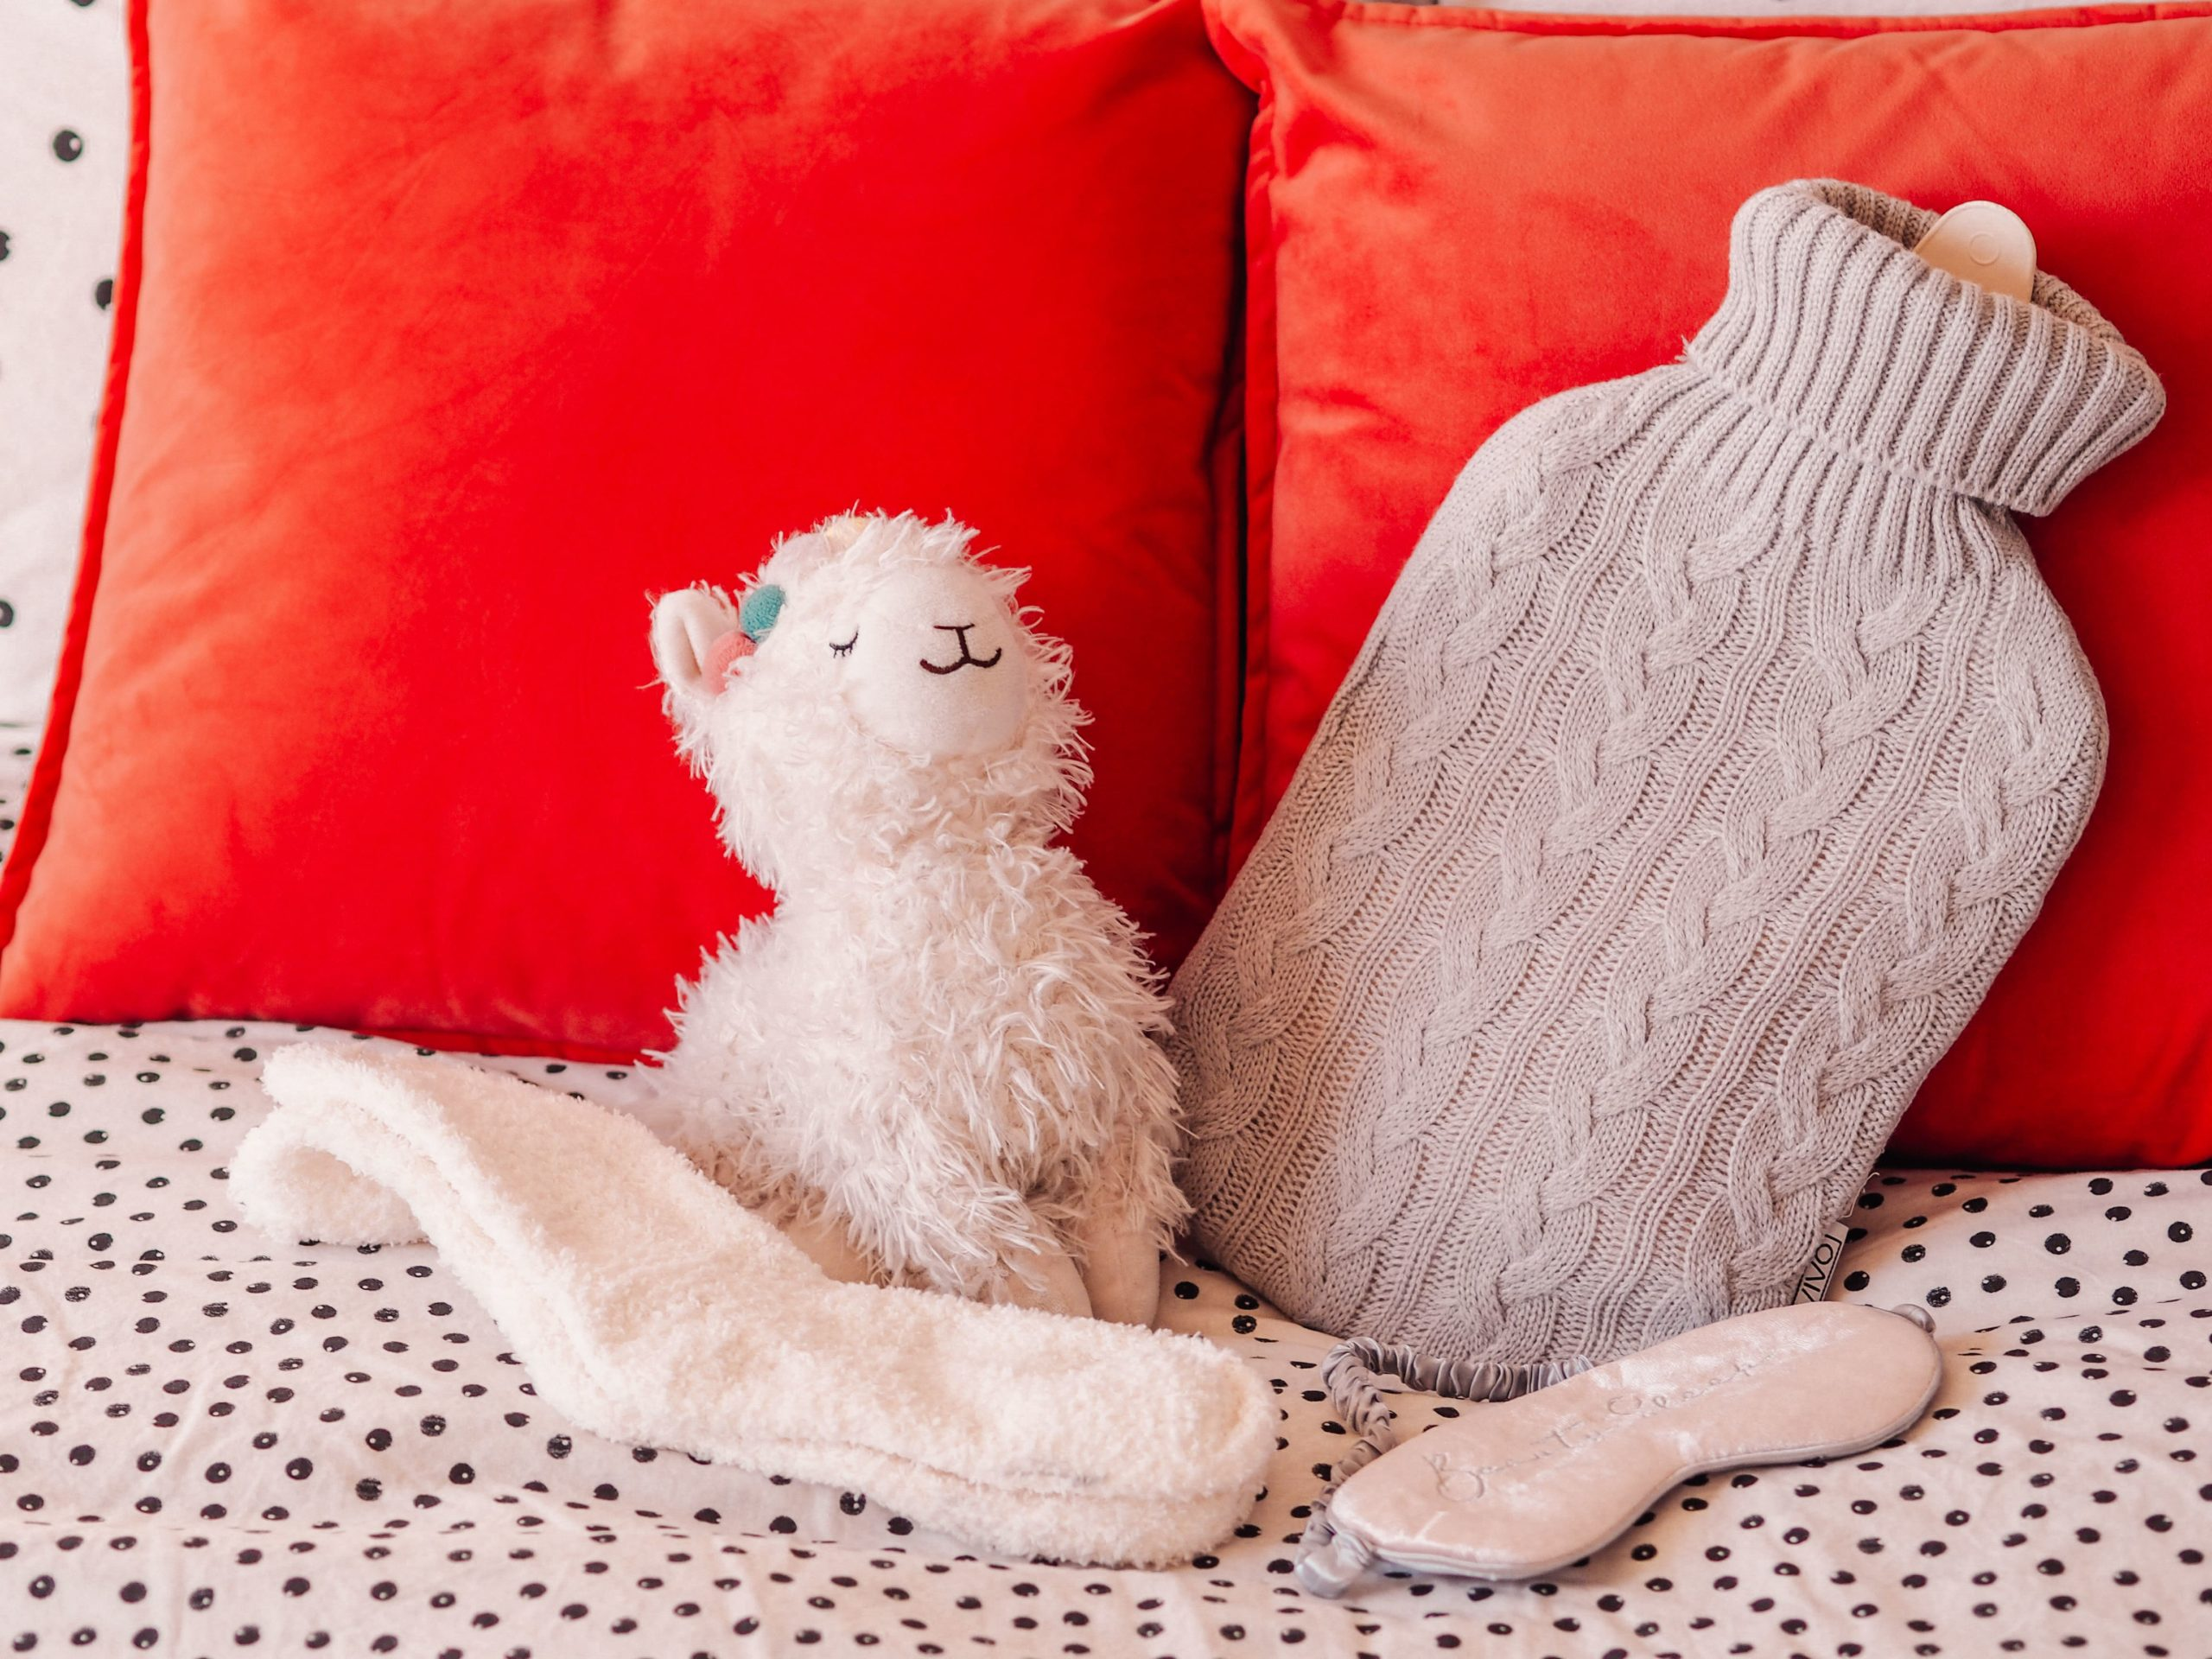 Preparing for darker evenings and sleeping better in the colder season